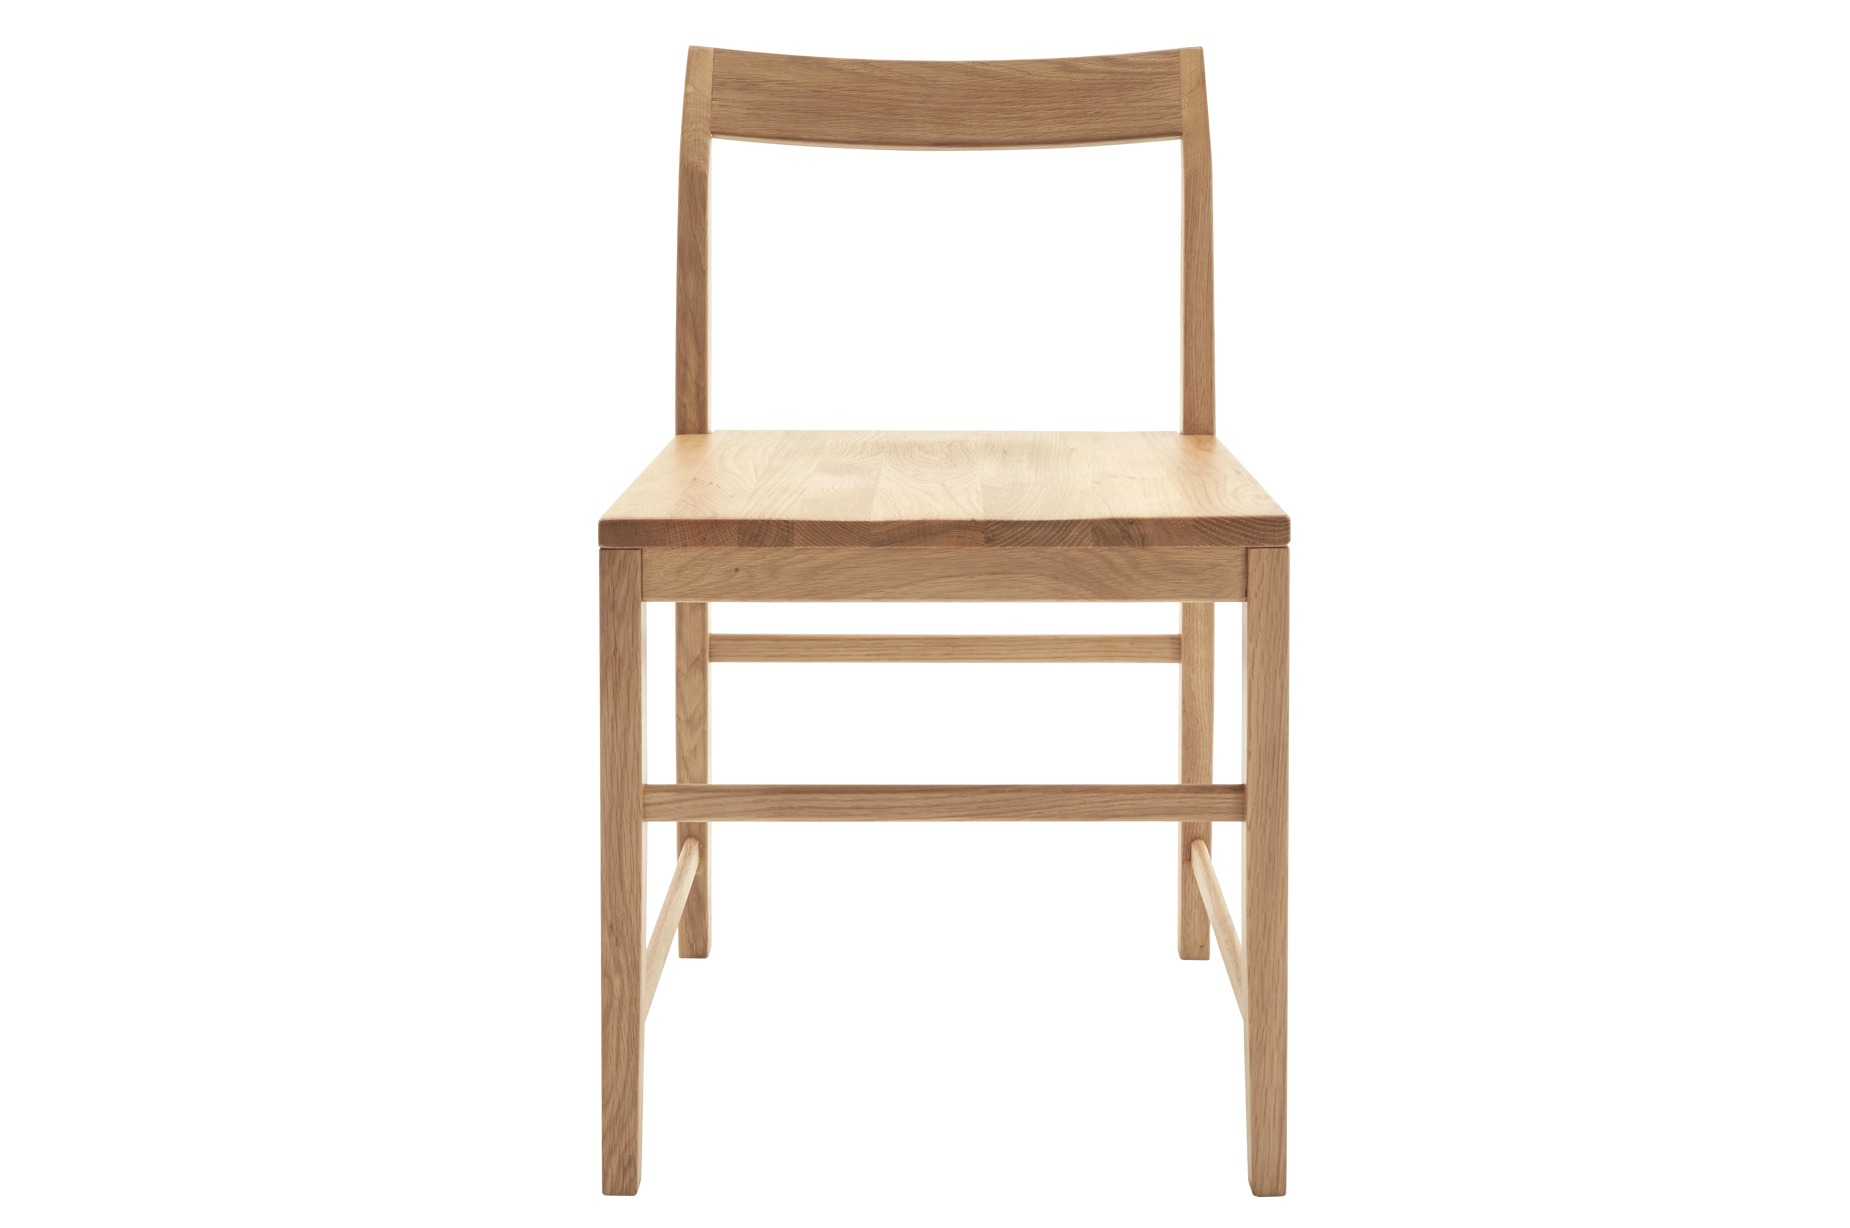 (주)도이치2020' No.1 Chair  DOICH Swedish cane ®  sc55/T oak chair  스웨디시 케인®  sc55/T 오크 체어